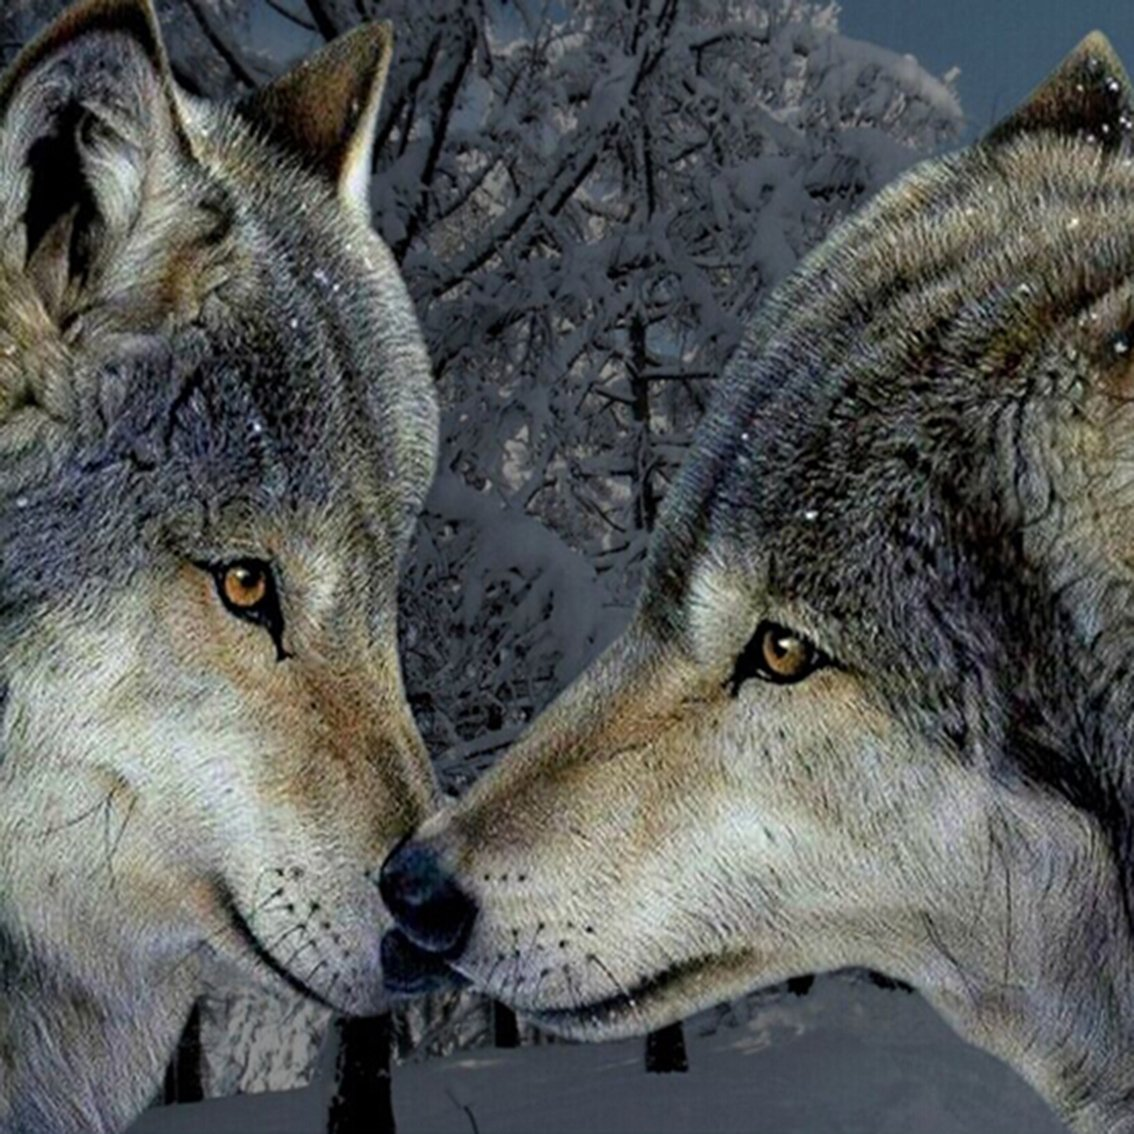 Love is at the end All... #ProtectWolves #Wolves  #YellowstoneWolves #StandForWolves  #Keepwolveslisted #Yellowstone #Wolfpack #ESA  #Wolfie<br>http://pic.twitter.com/29KLiFrJr6